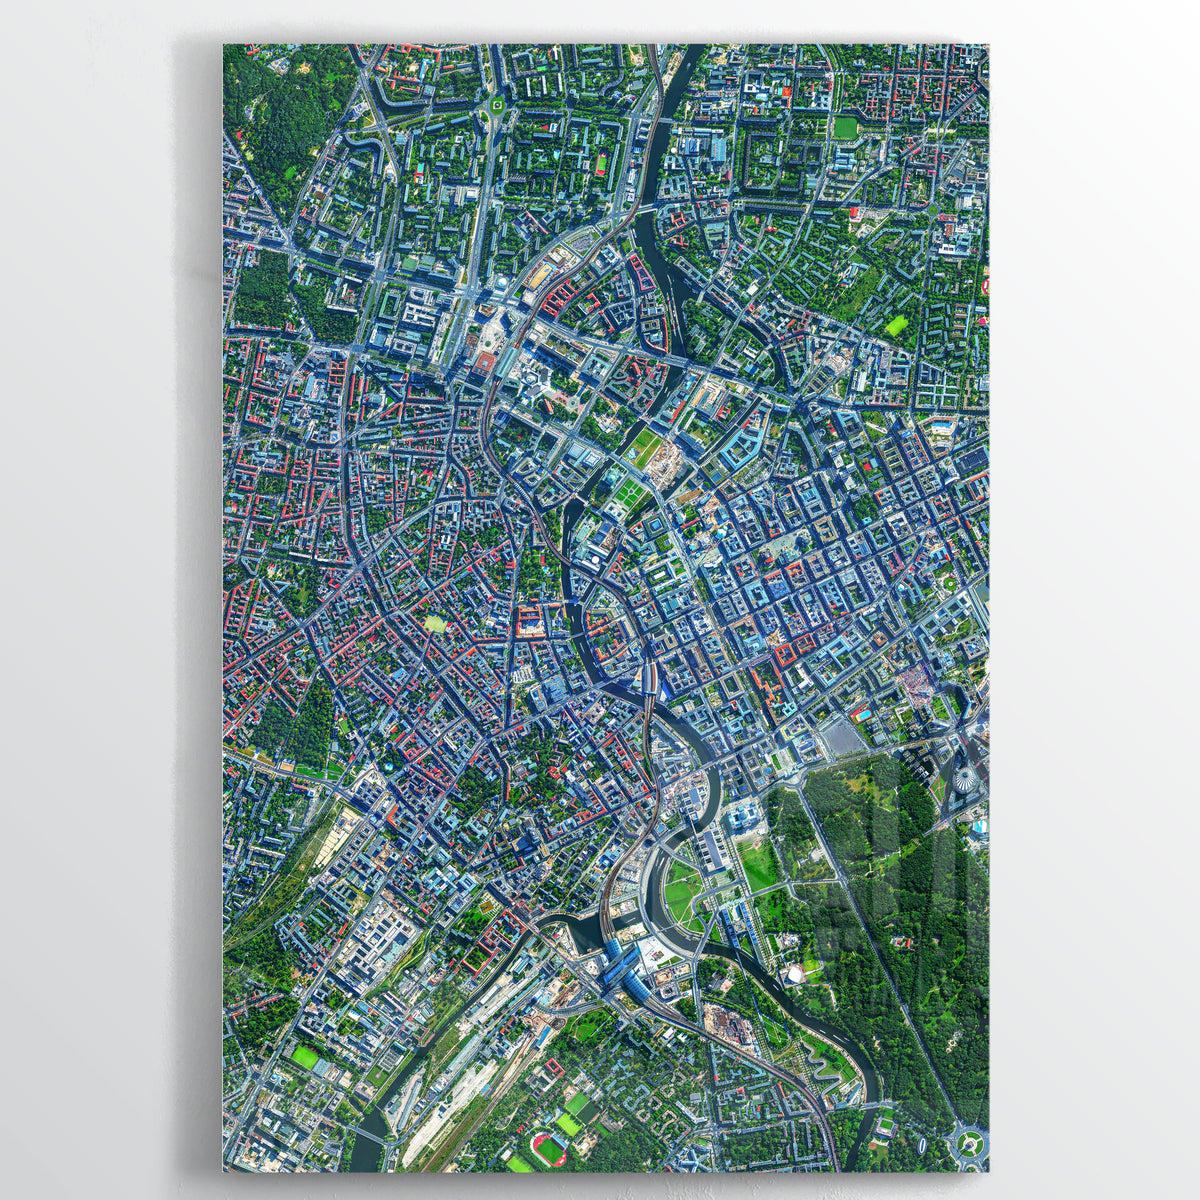 Berlin Earth Photography - Floating Acrylic Art - Point Two Design